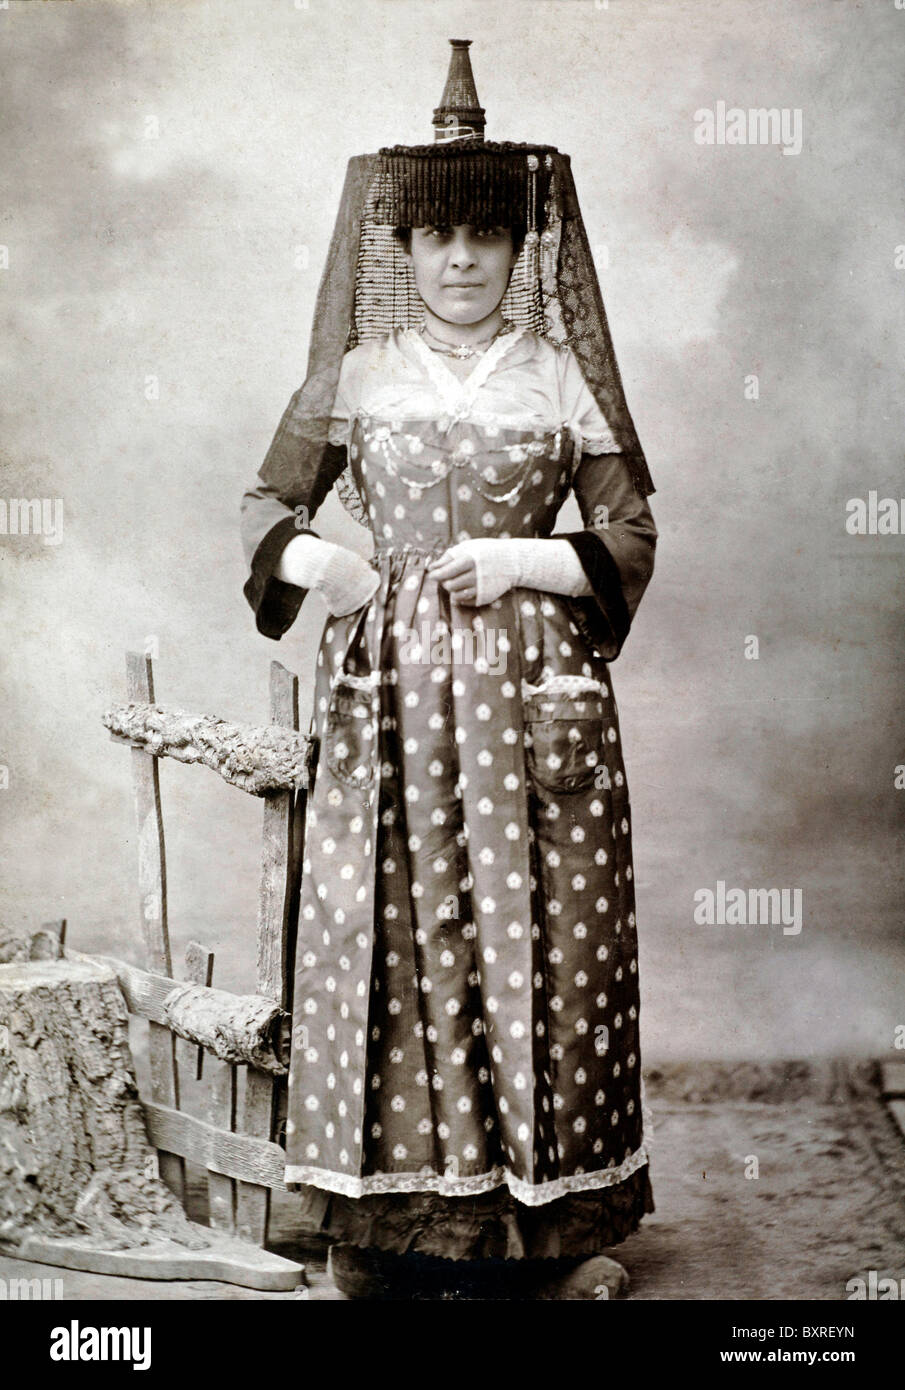 French Woman in Traditional Folklore or Folkloric Costume from Mâcon, Burgundy, Central France (c1900) - Stock Image